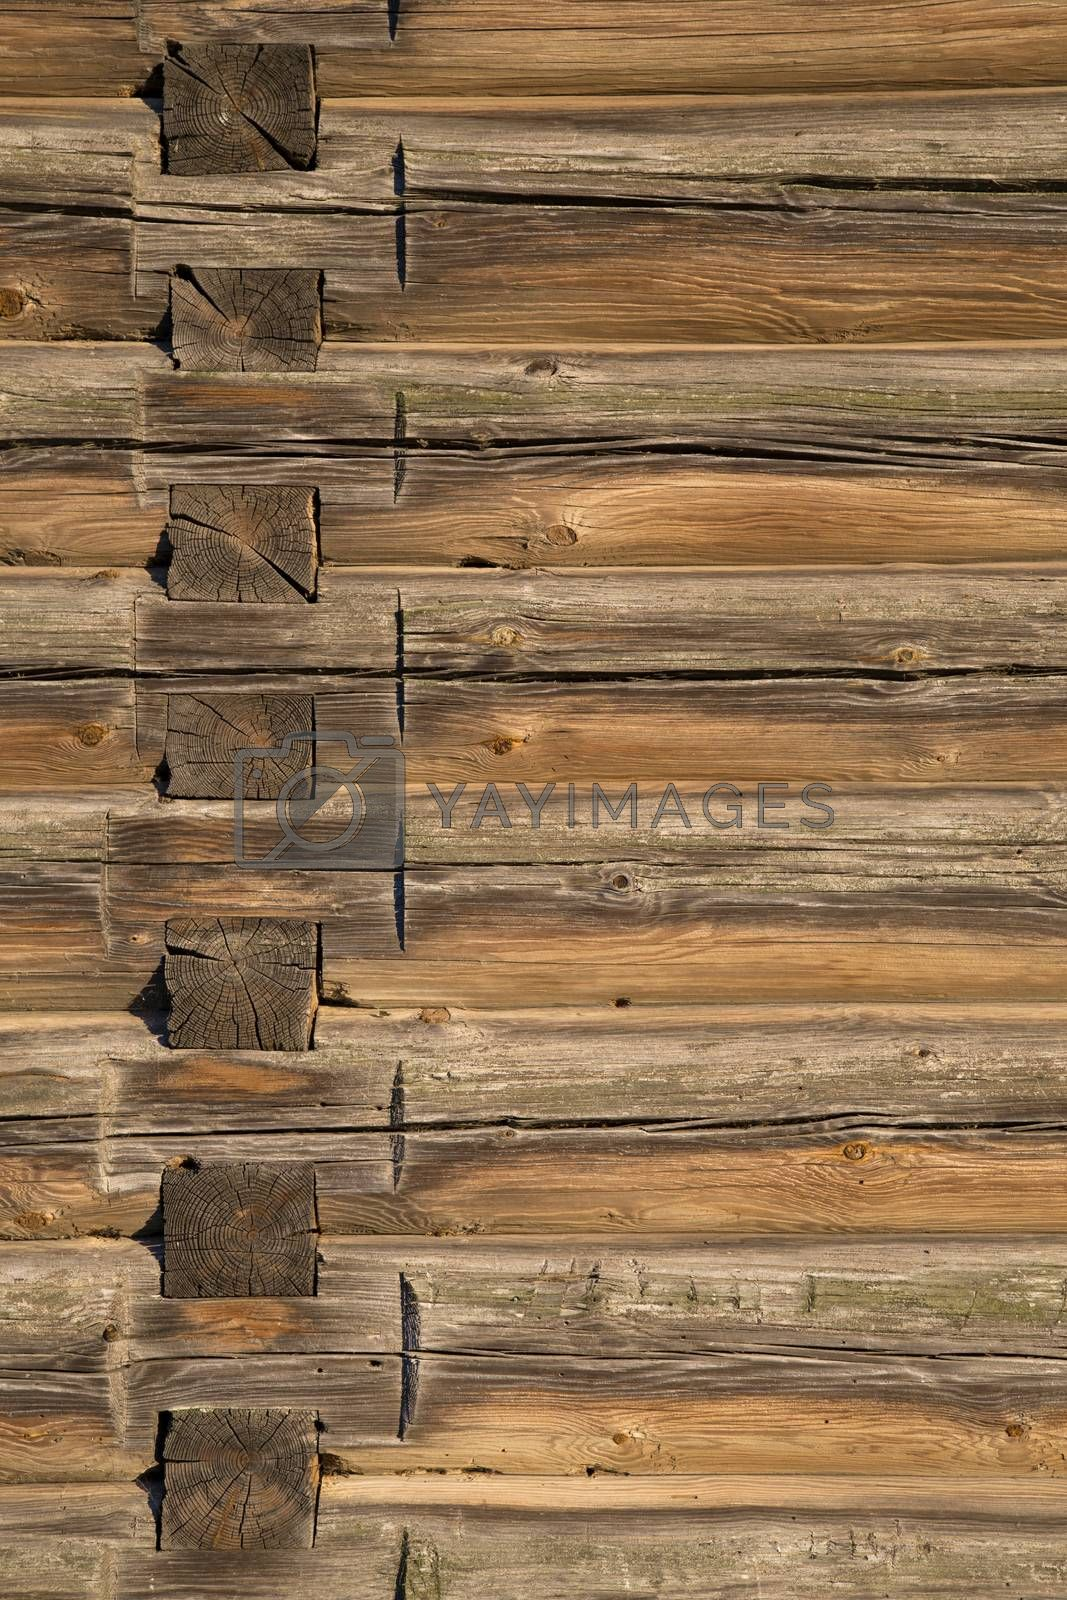 Royalty free image of Wood logs texture of an old house. by phortcach